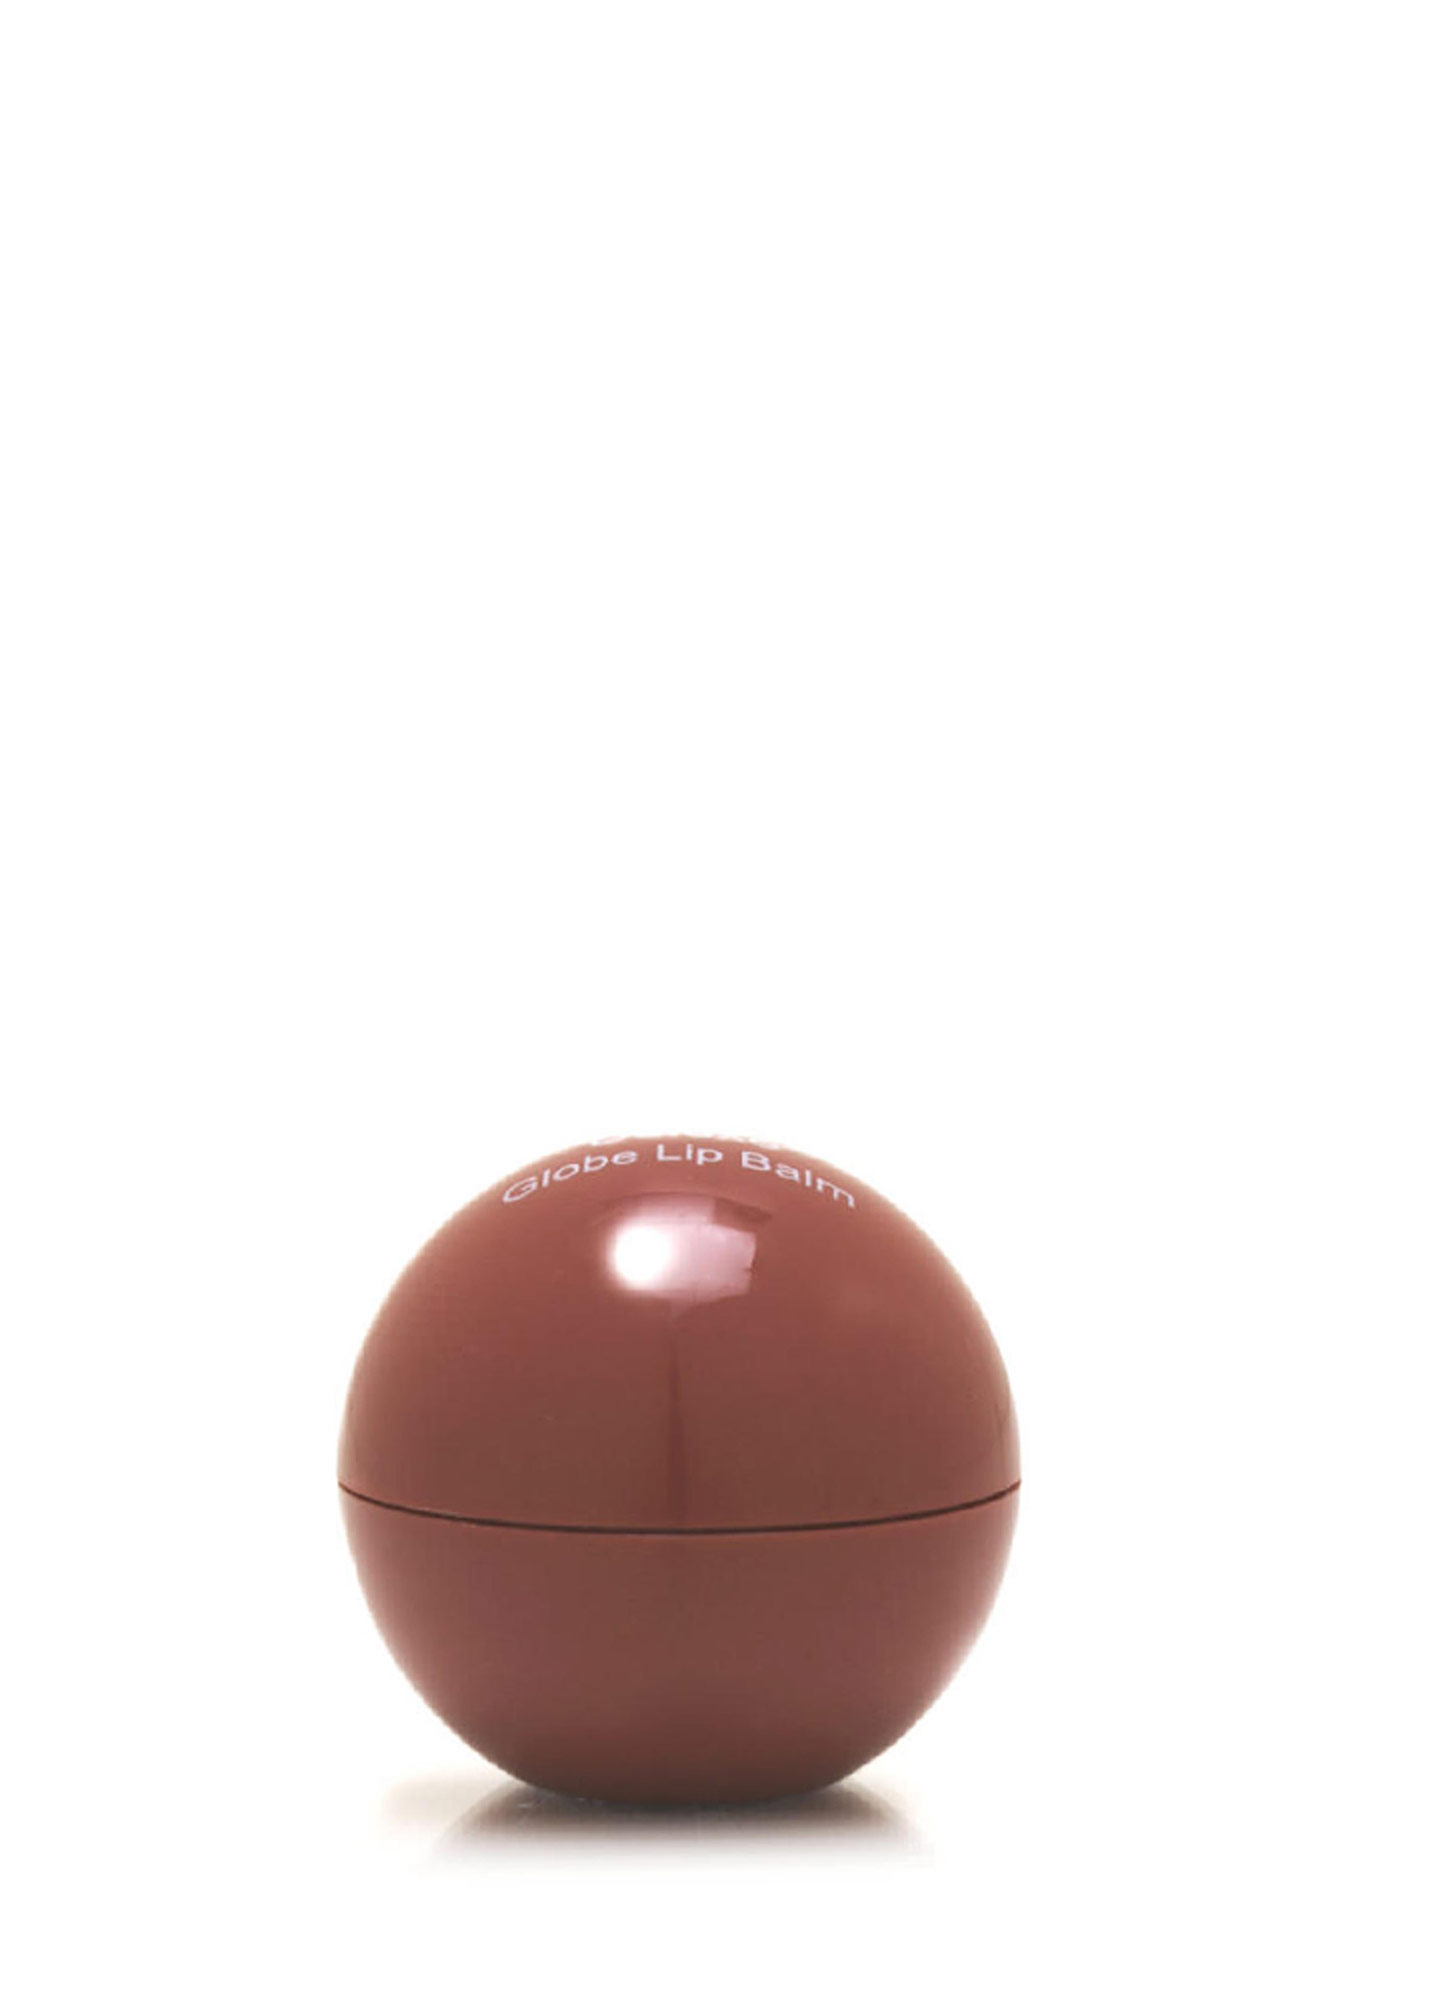 Sphere No Evil Lip Balm CHOCOLATE